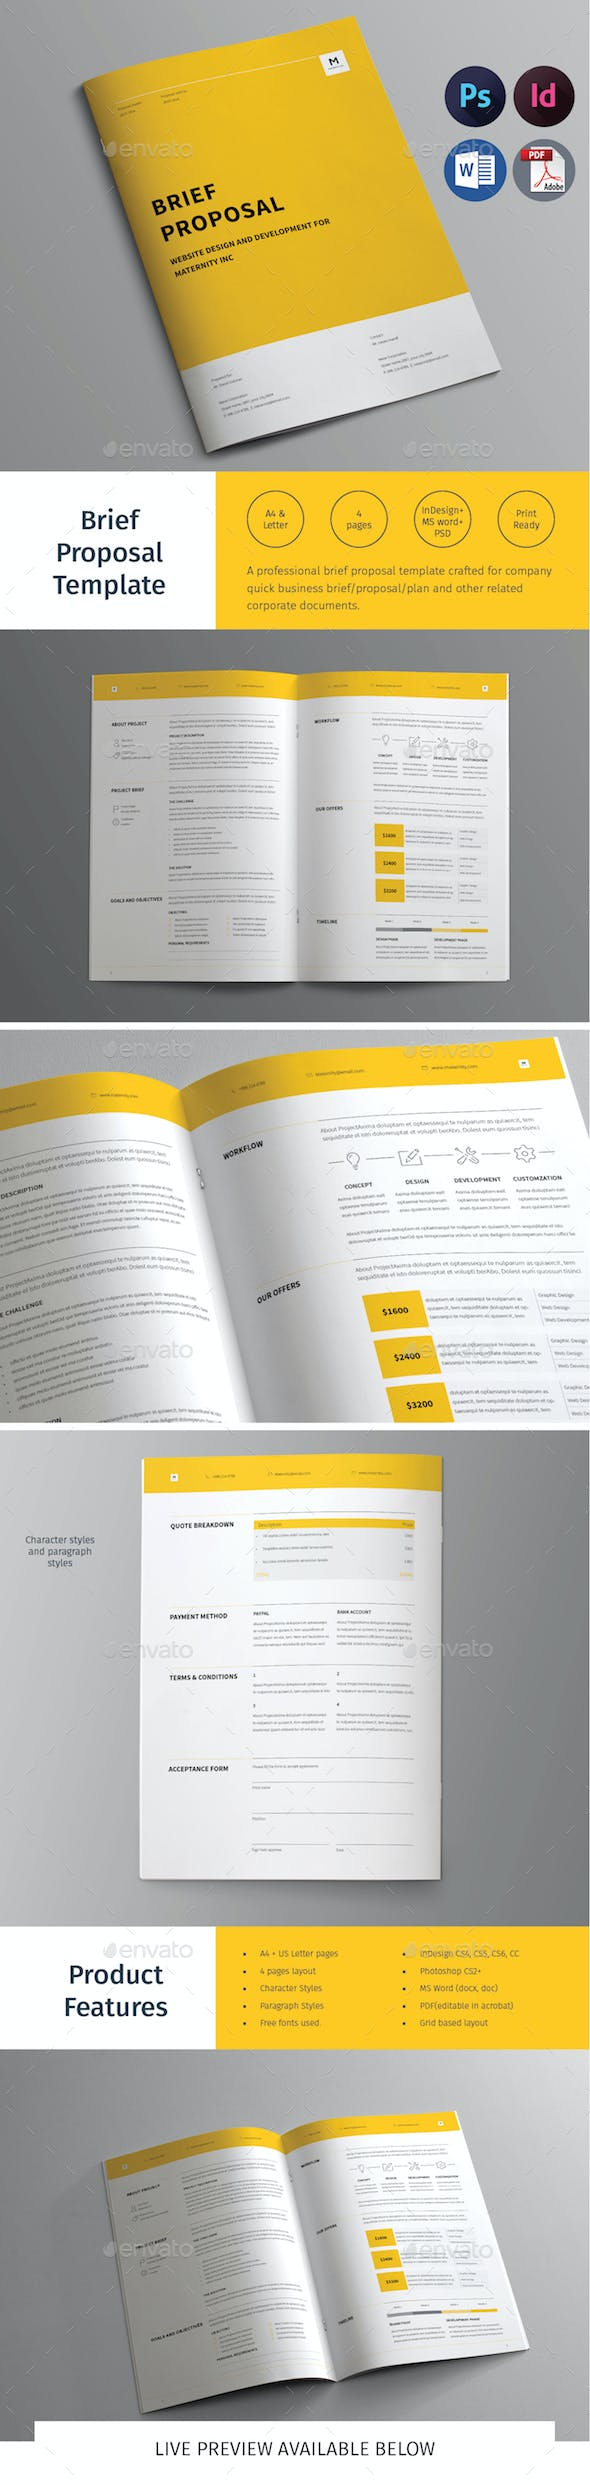 brief proposal template by tontuz graphicriver